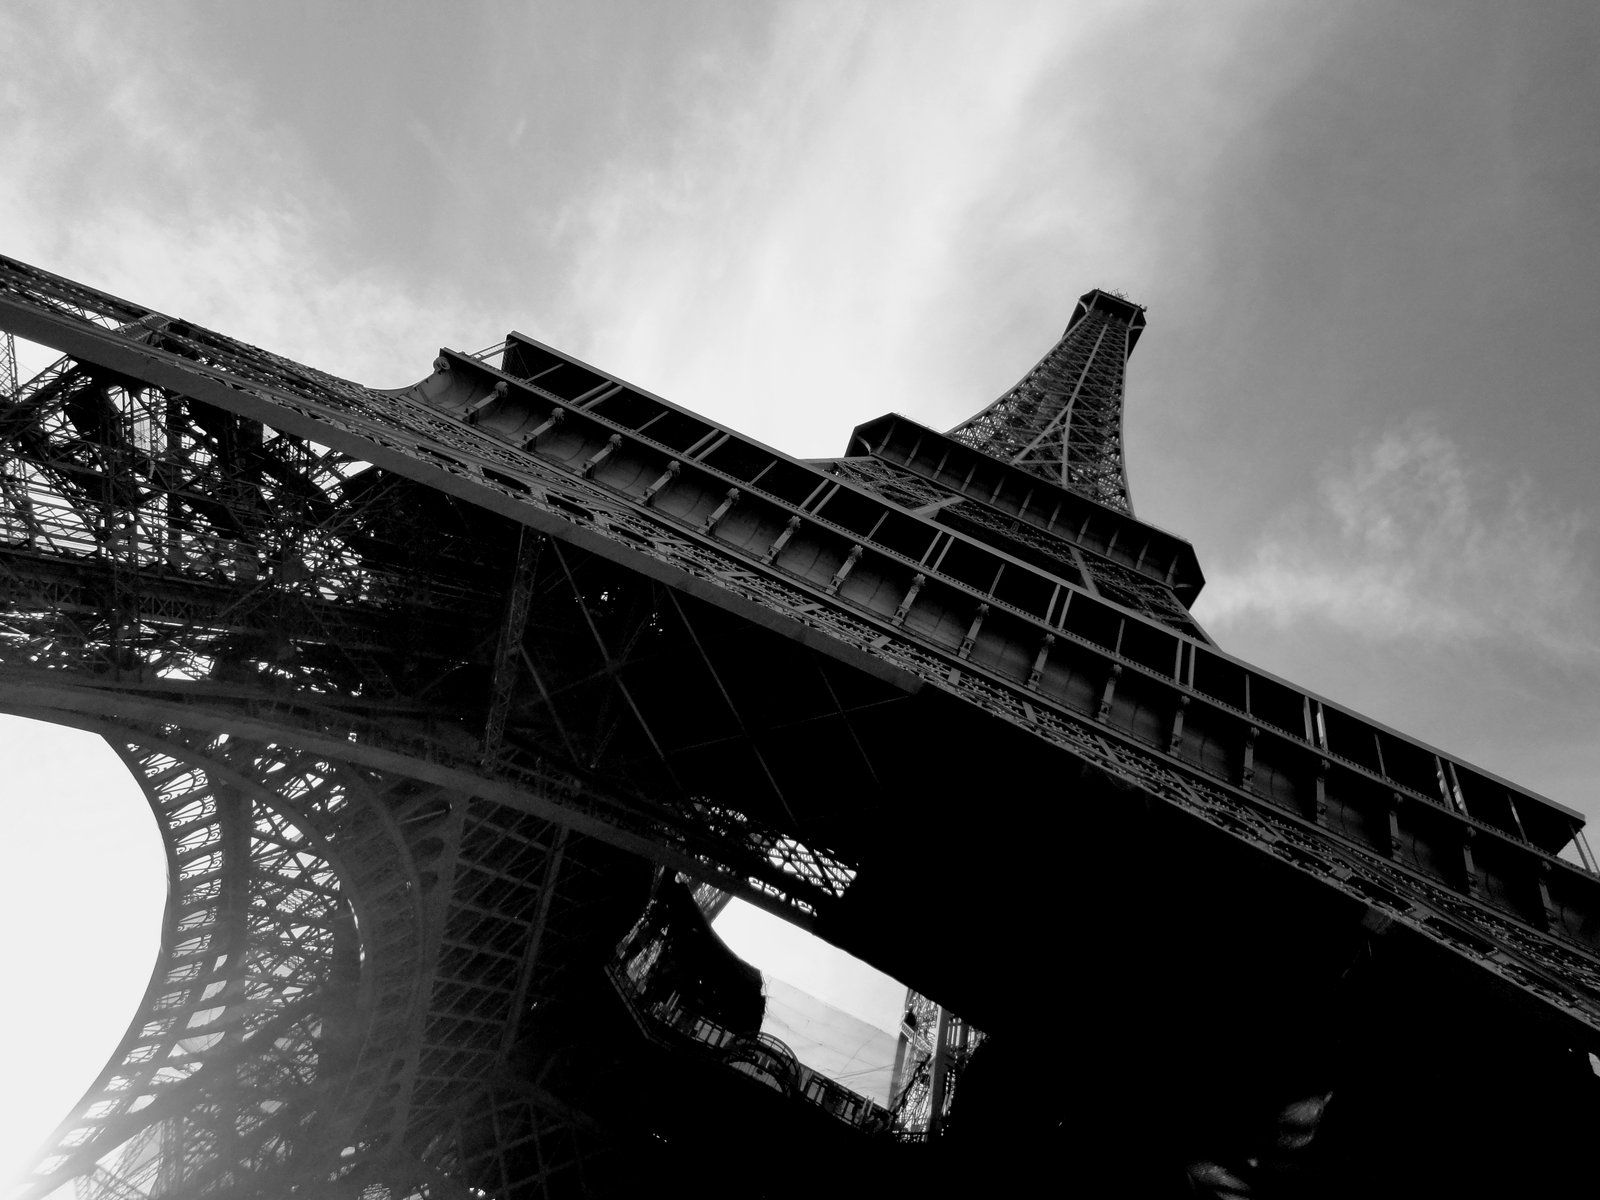 Architecture Photography Wallpaper eiffel tower architecture photography black and white hd wallpaper